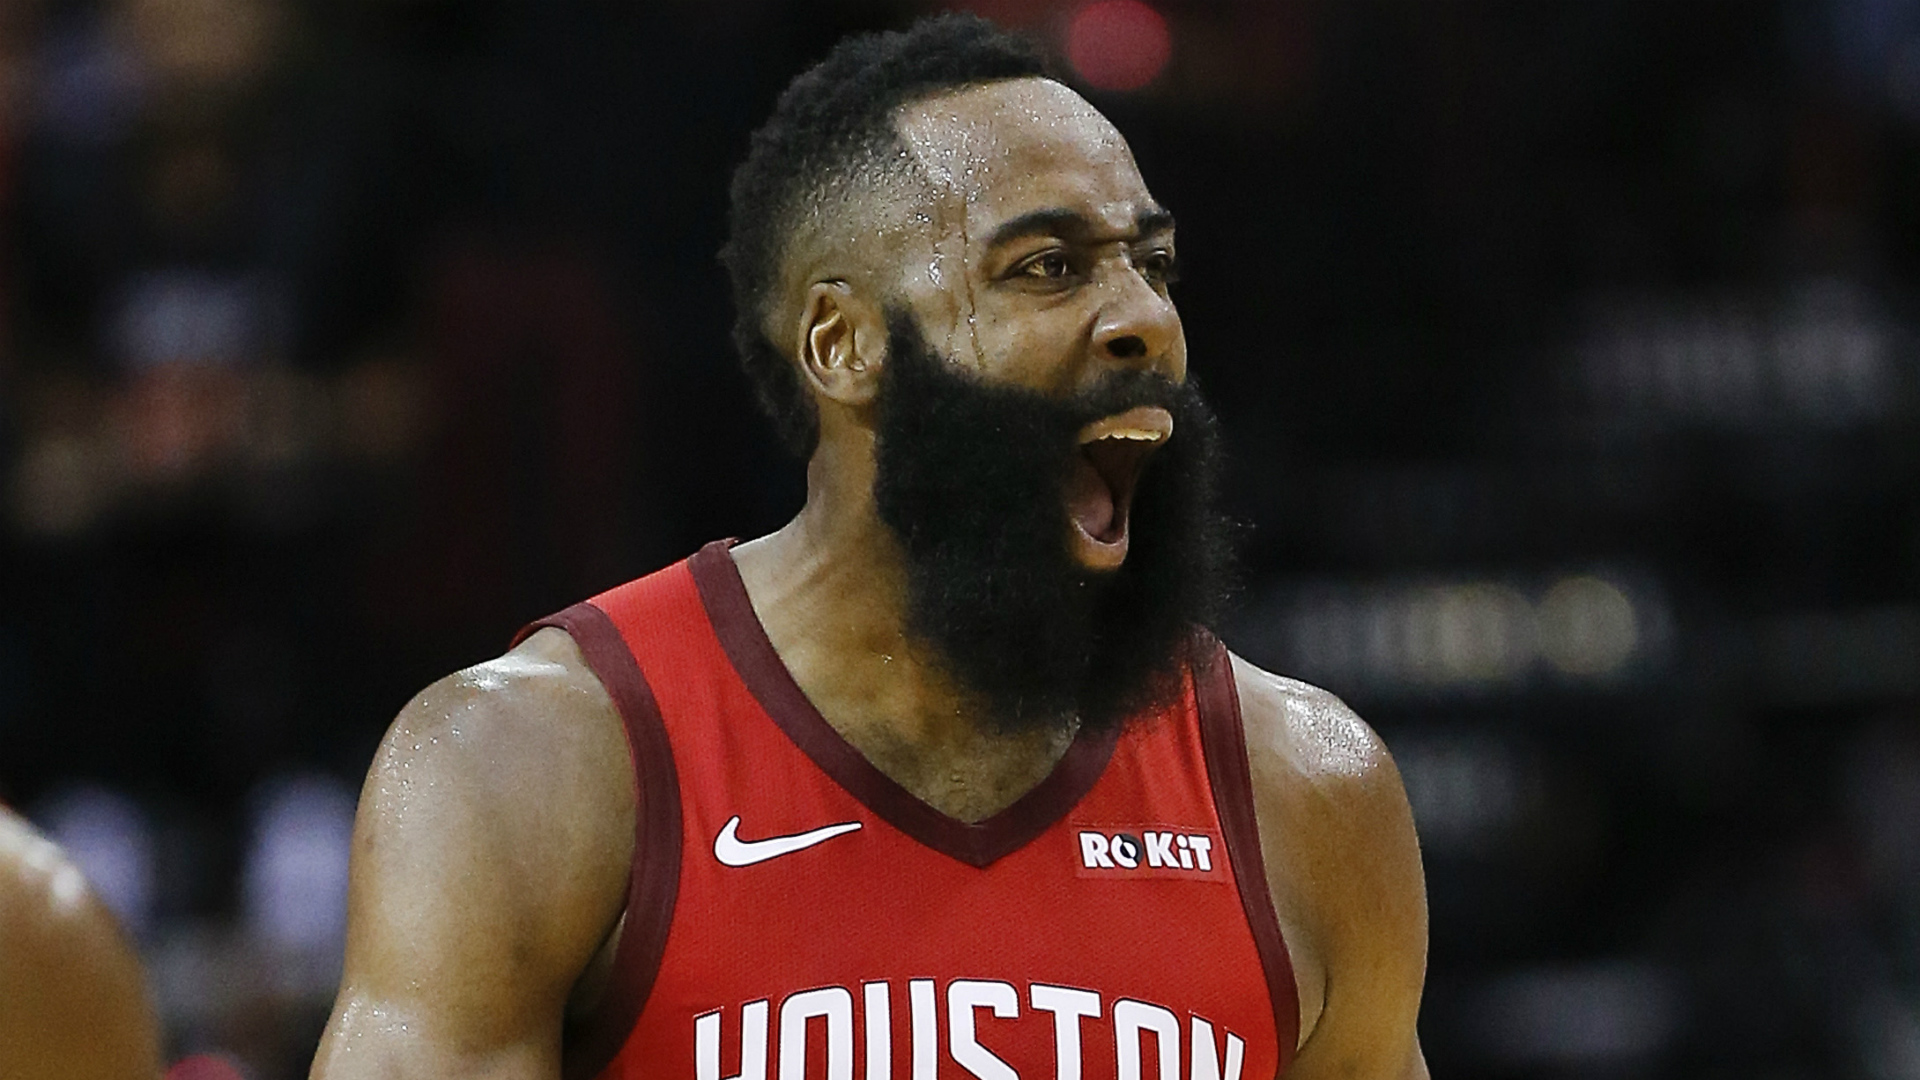 Harden's hot streak gives Rockets win over Pelicans